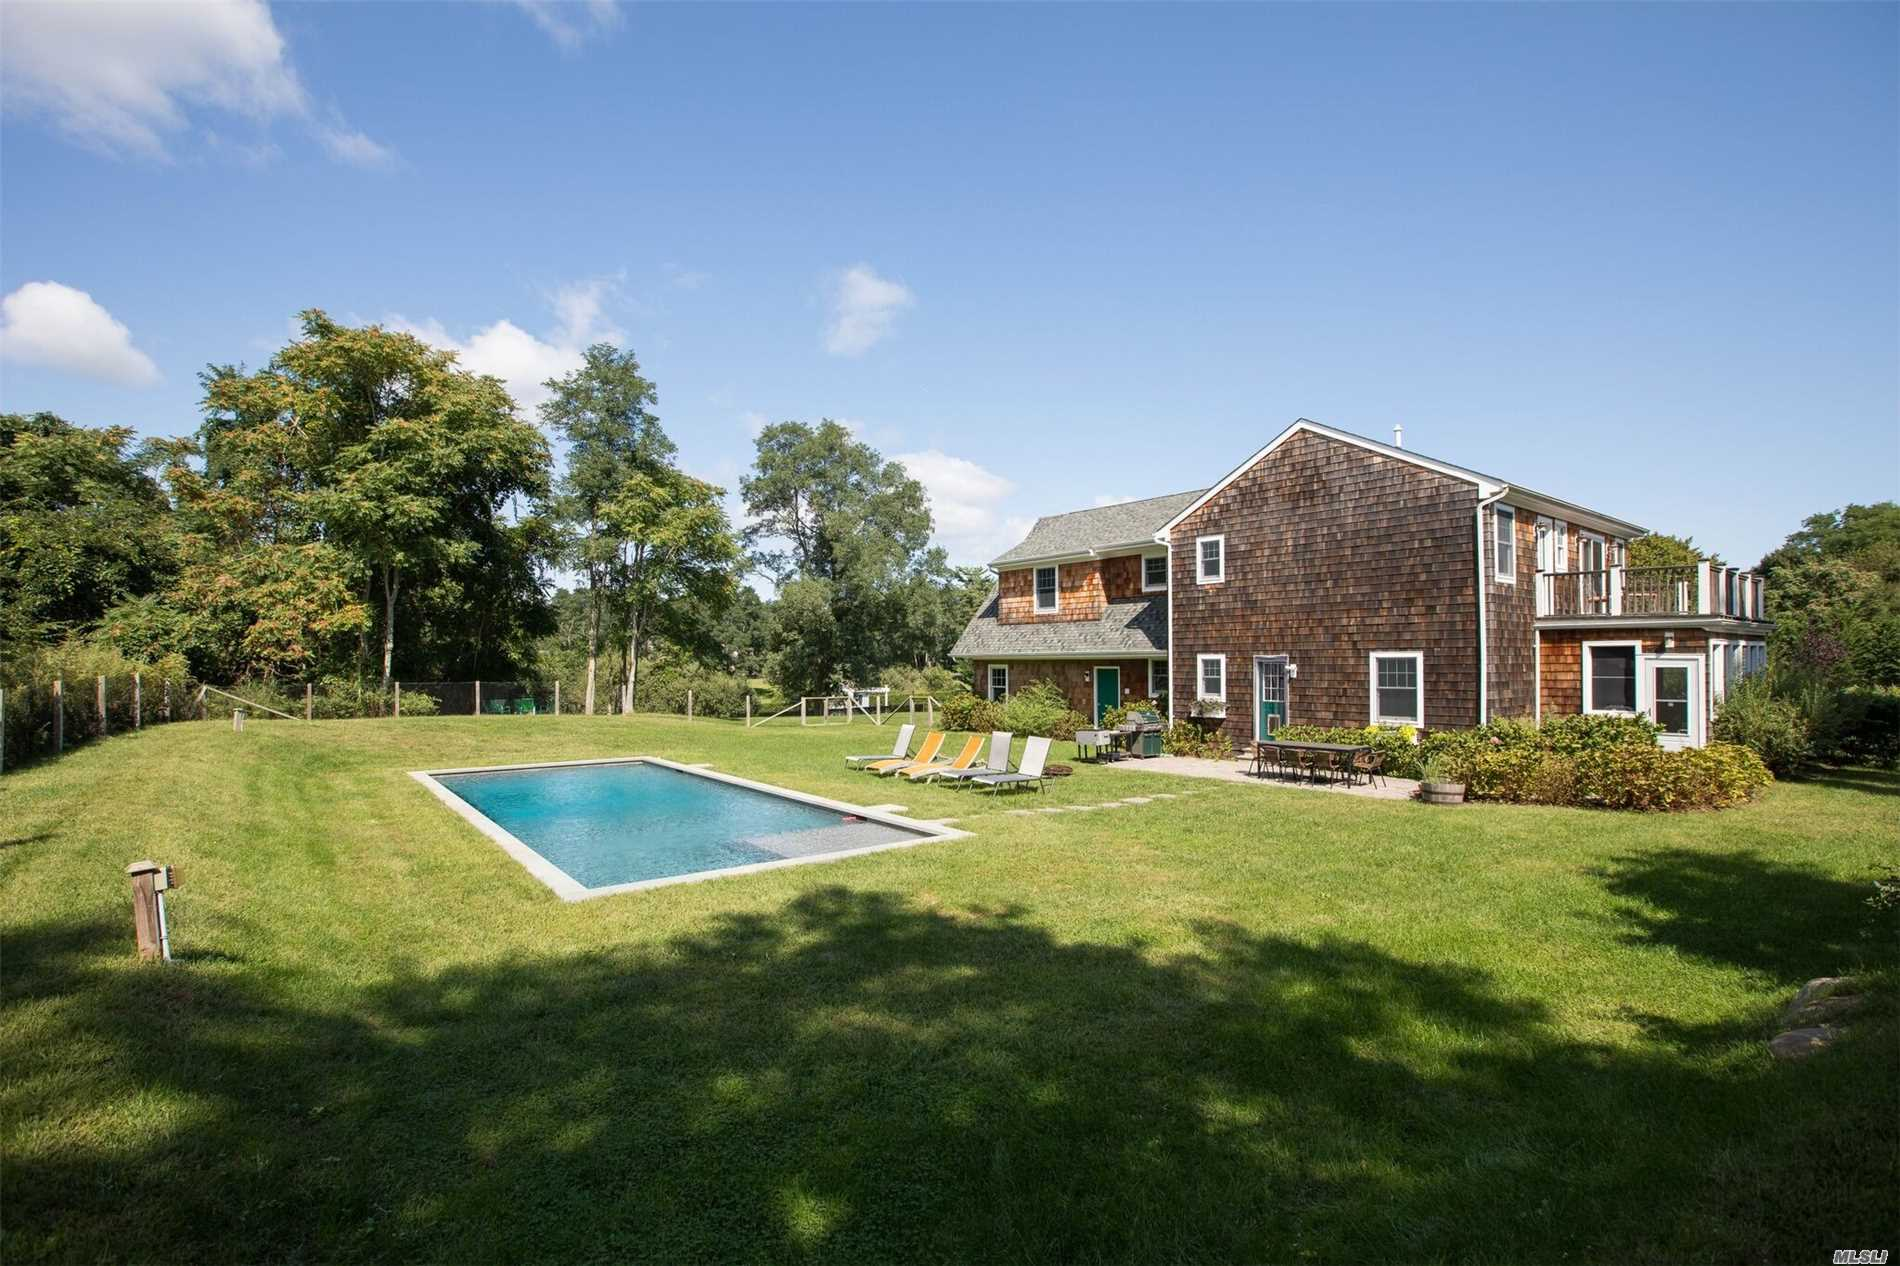 This Wonderful Farmhouse Is Nestled Back Away From Neighbors, Overlooking A Preserved Meadow. It Gives The Feel Of An Authentic Farmhouse Yet It Affords The Comfort And Luxury Of A New Home. Some Highlights Are The Spacious Master Br Suite, The Screened Porch & The Poolside Patio & Pool For Entertaining & Fun. Near To Wades Beach, Fresh Pond And The Convenience Of The Center, This Property Is Perfect For A Summer Retreat Or A Year Round Home.